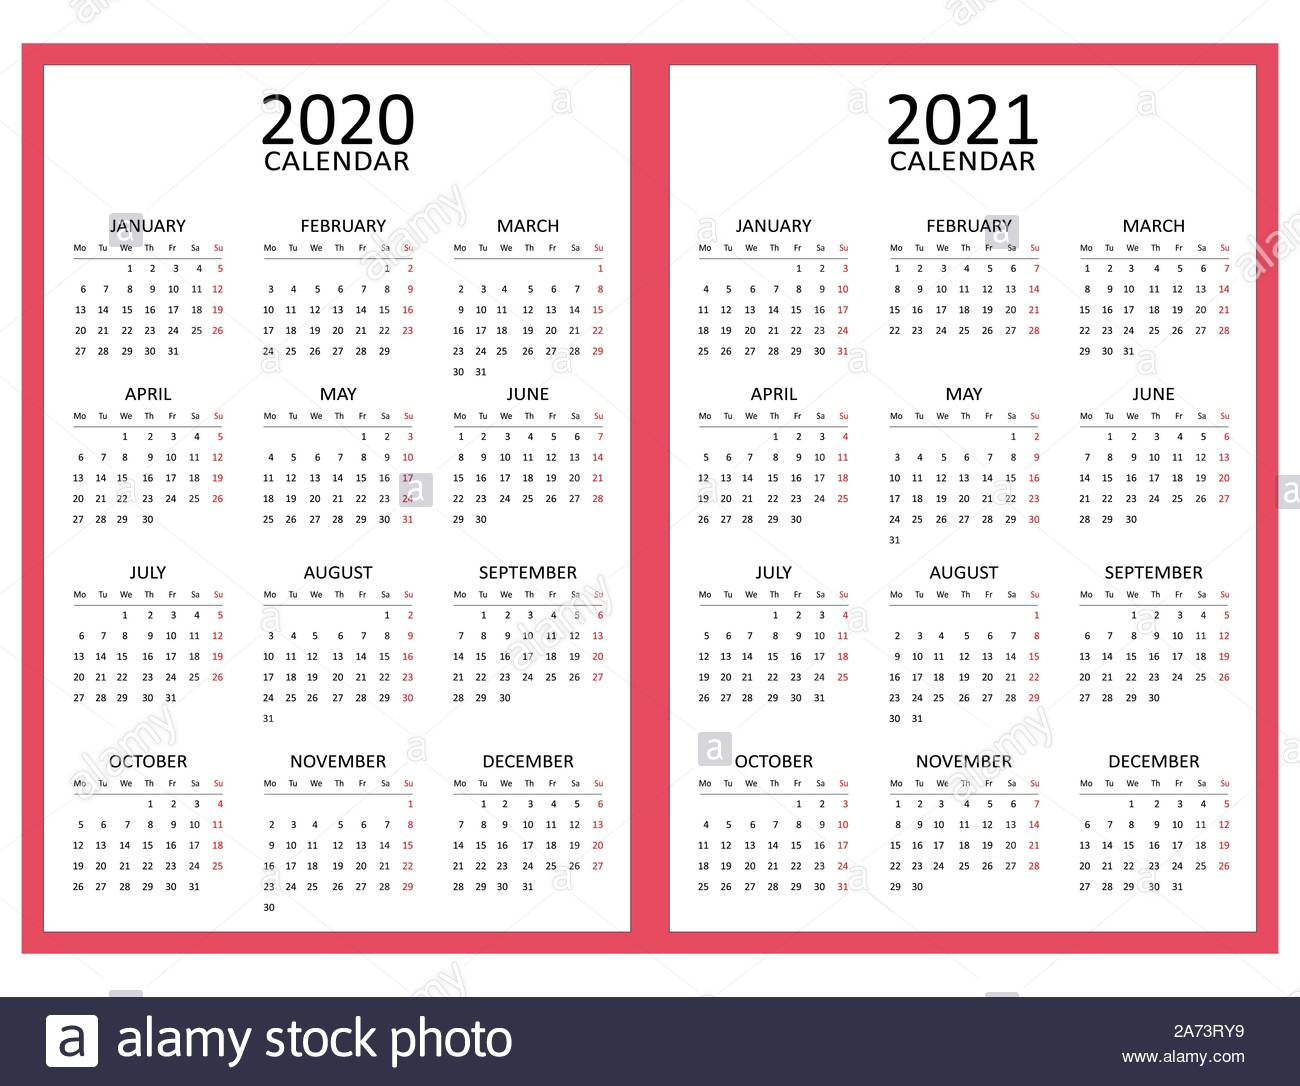 Simple Calendar Layout For Two Years 2020 And 2021. Starts intended for Sunday To Saturday Calendar